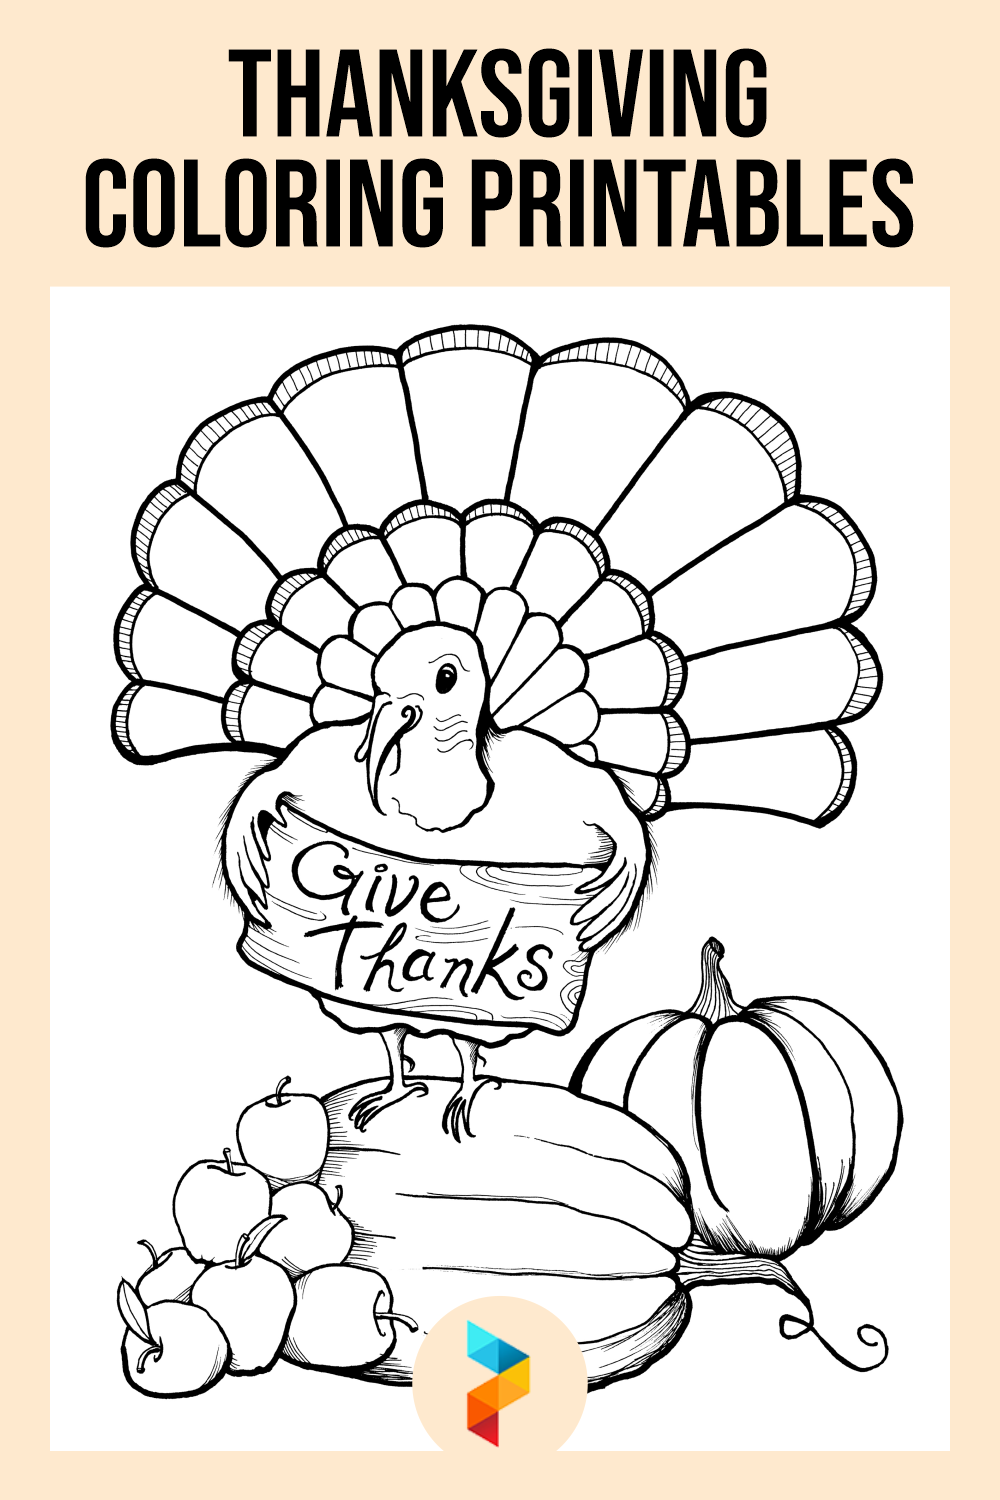 Thanksgiving Coloring Printables